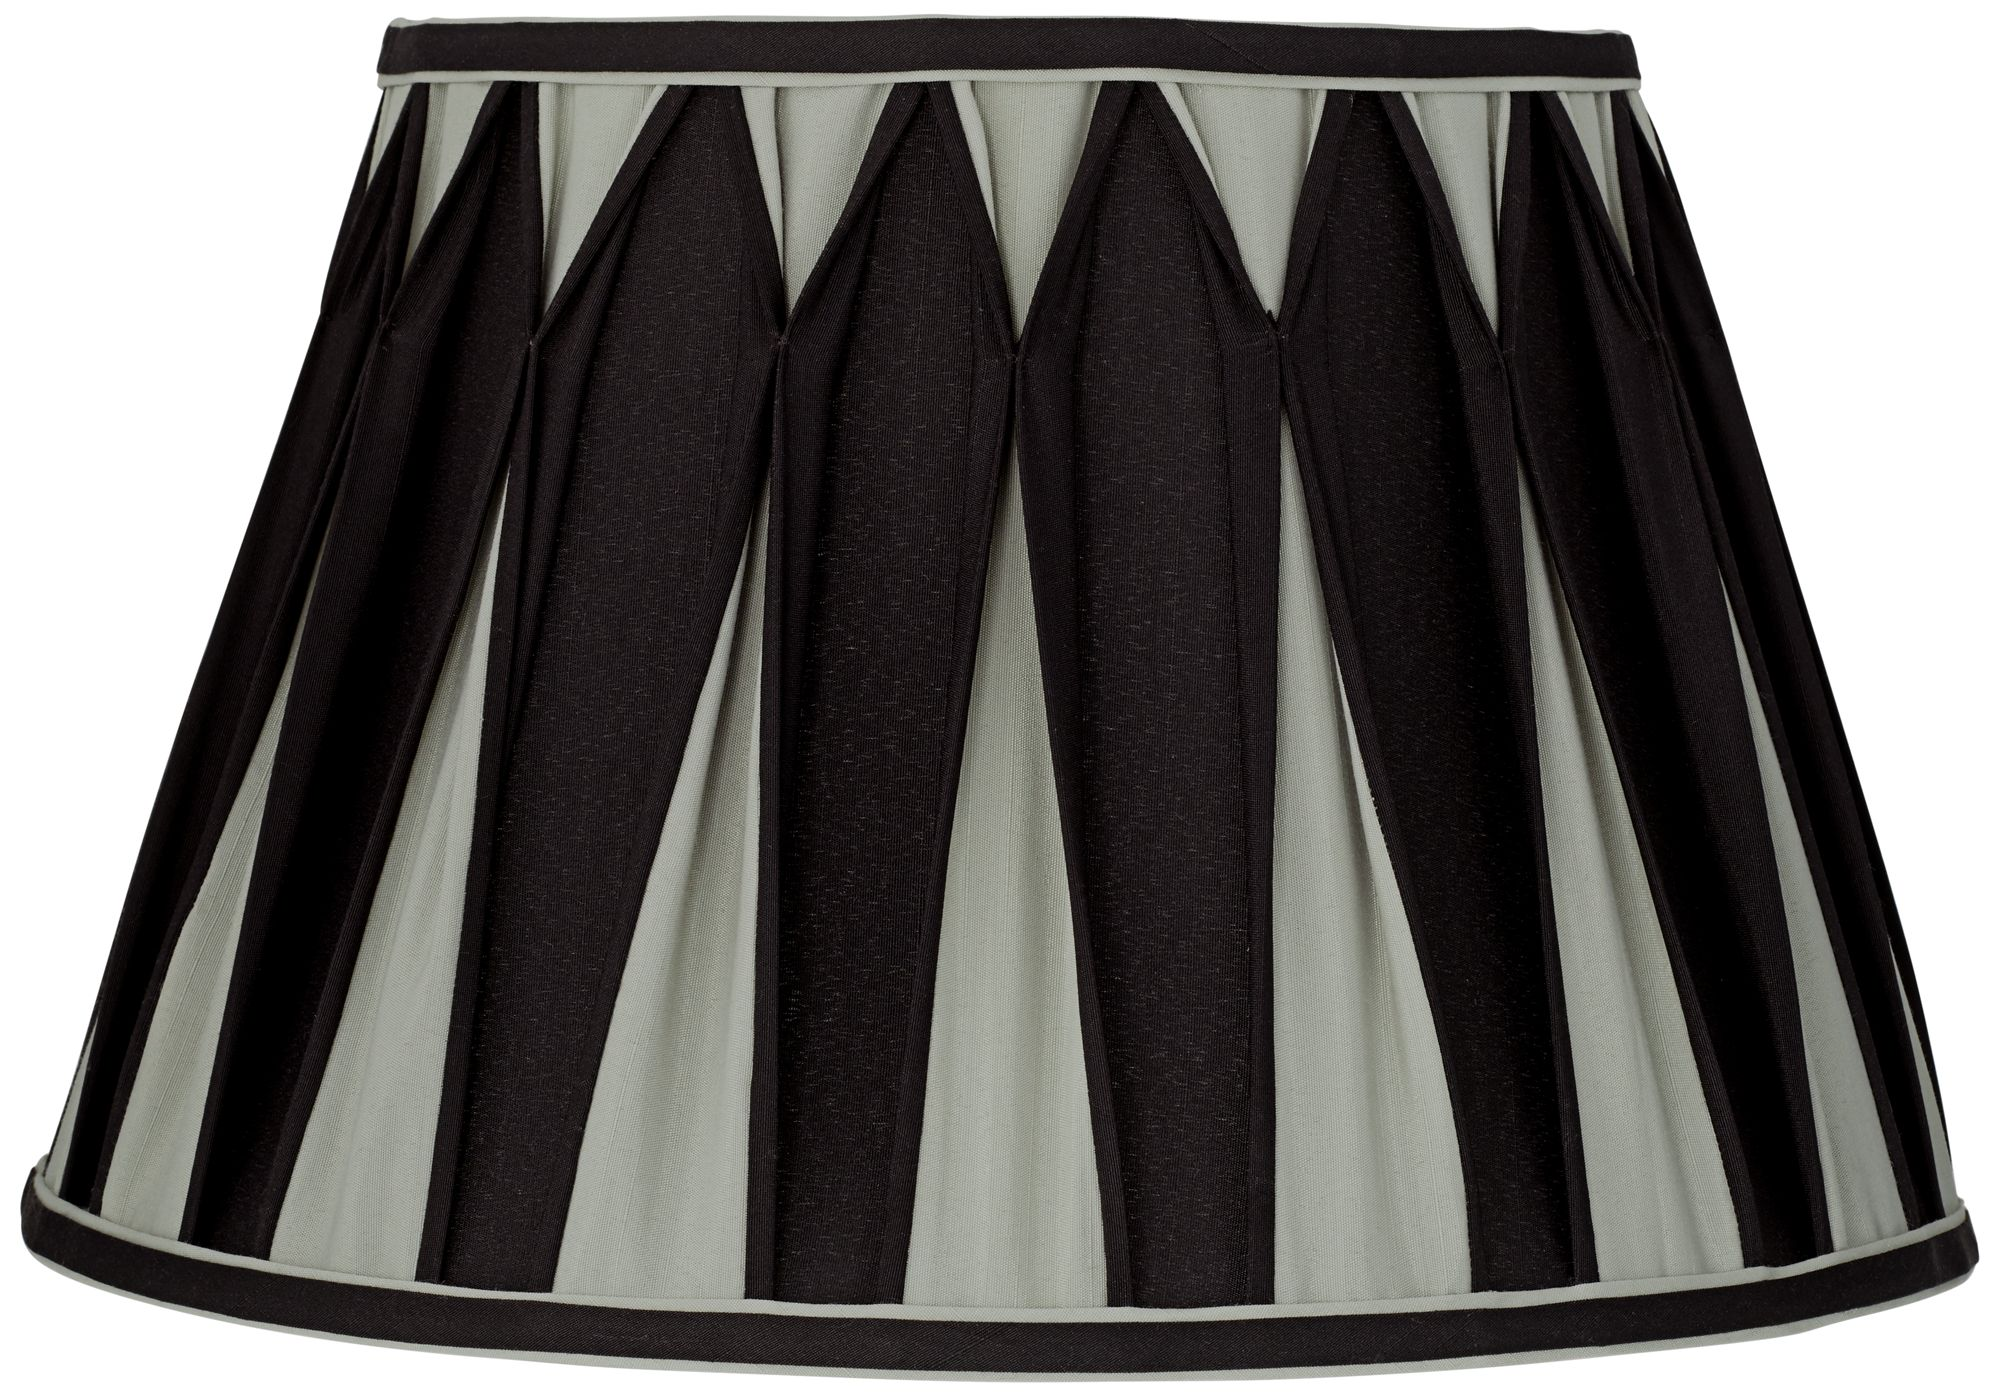 Geneva Gray And Black Pleat Empire Lamp Shade 10x16x10.5 (Spider)